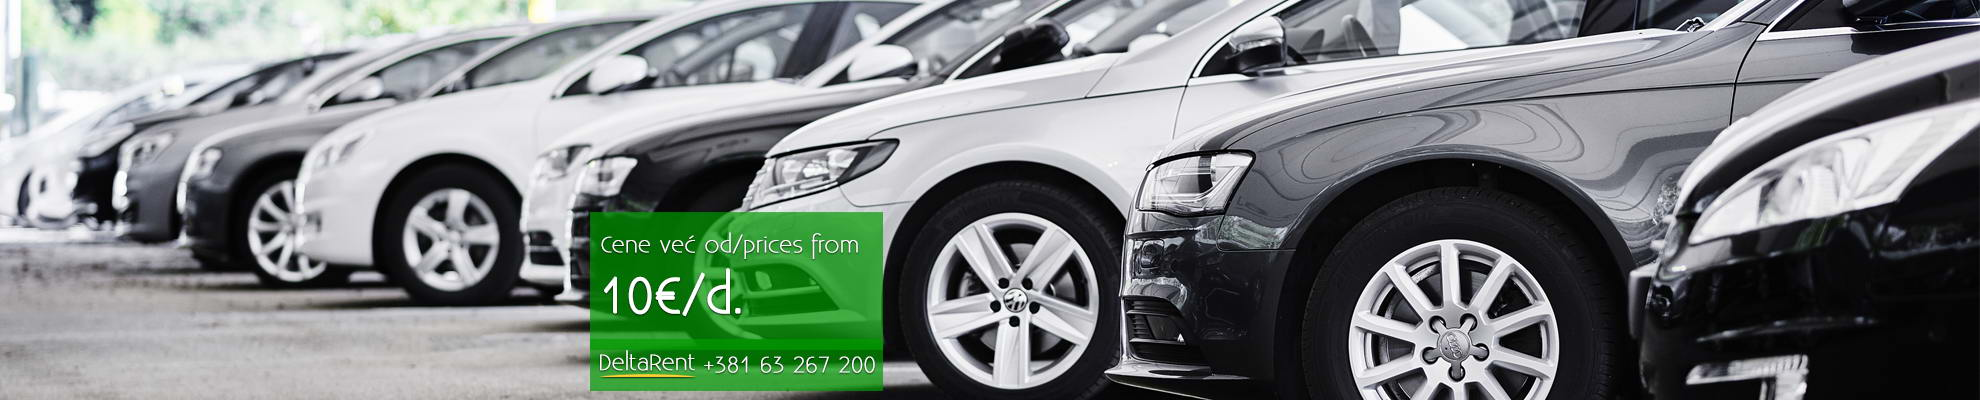 Rent a car Belgrade, prices from 10 euros, rental: DeltaRent